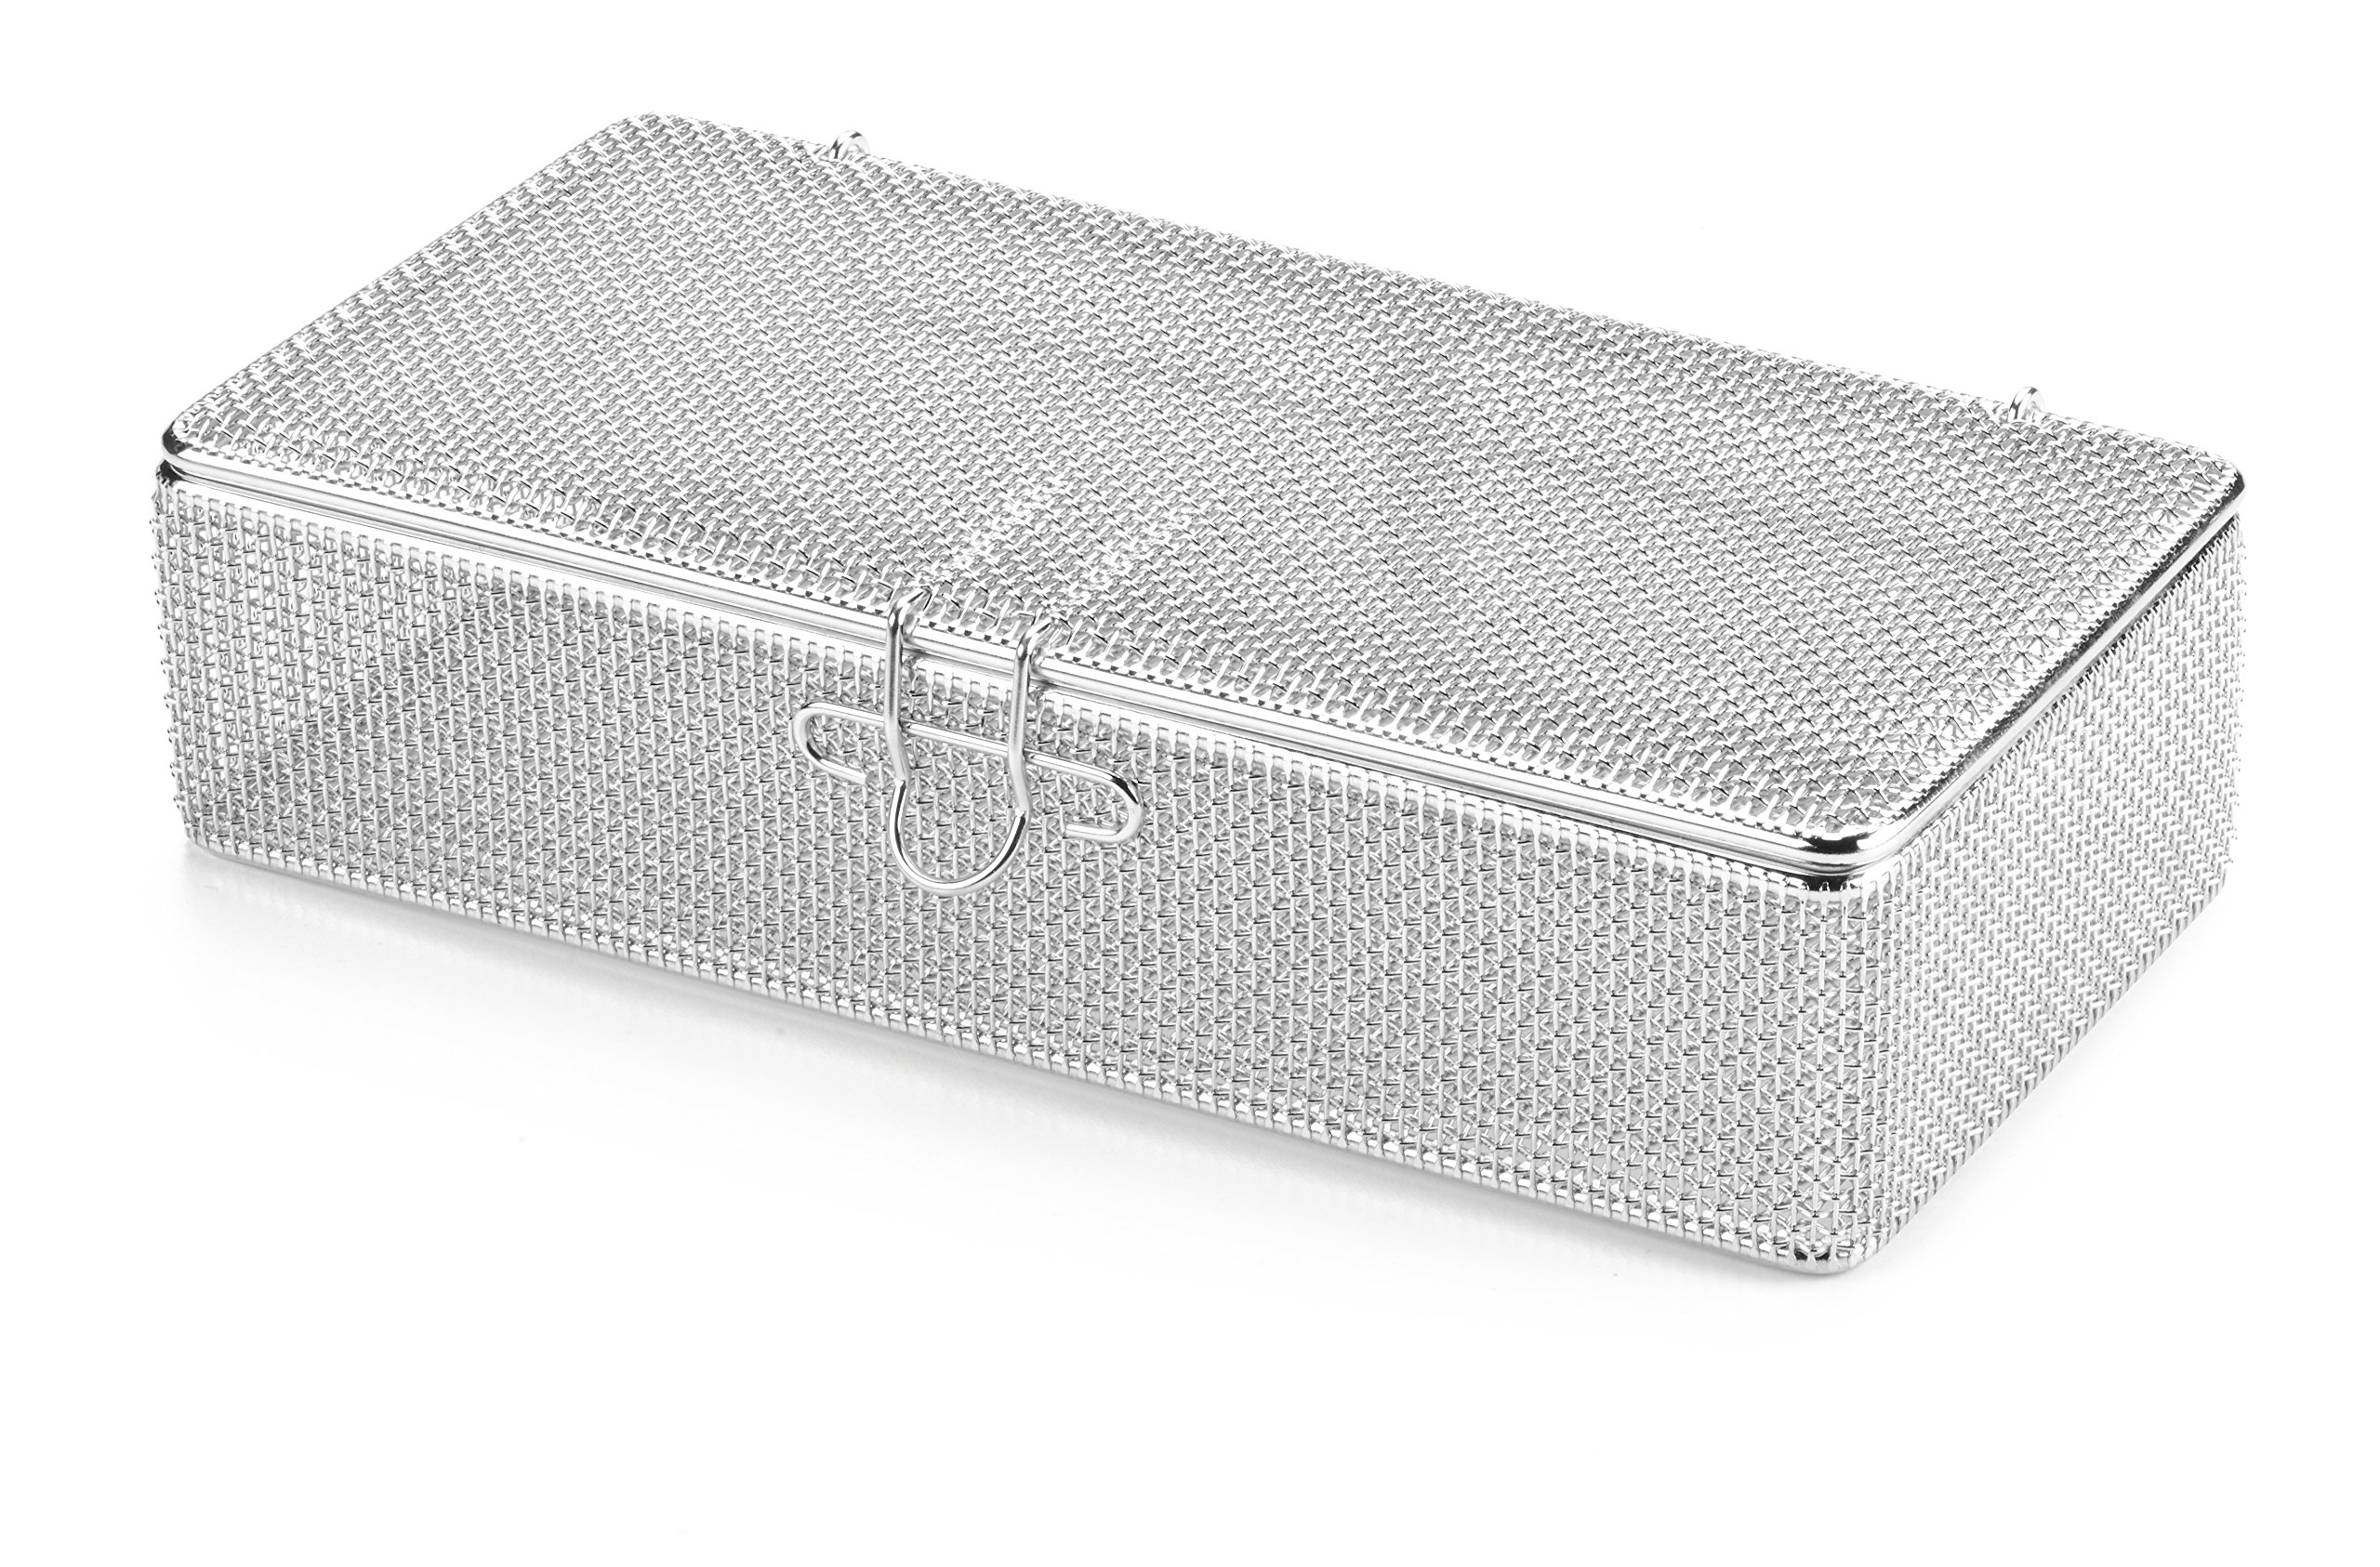 Key Surgical MT-7100 Micro Mesh Tray with Lid, Stainless Steel, 225 mm x 110 mm x 50 mm